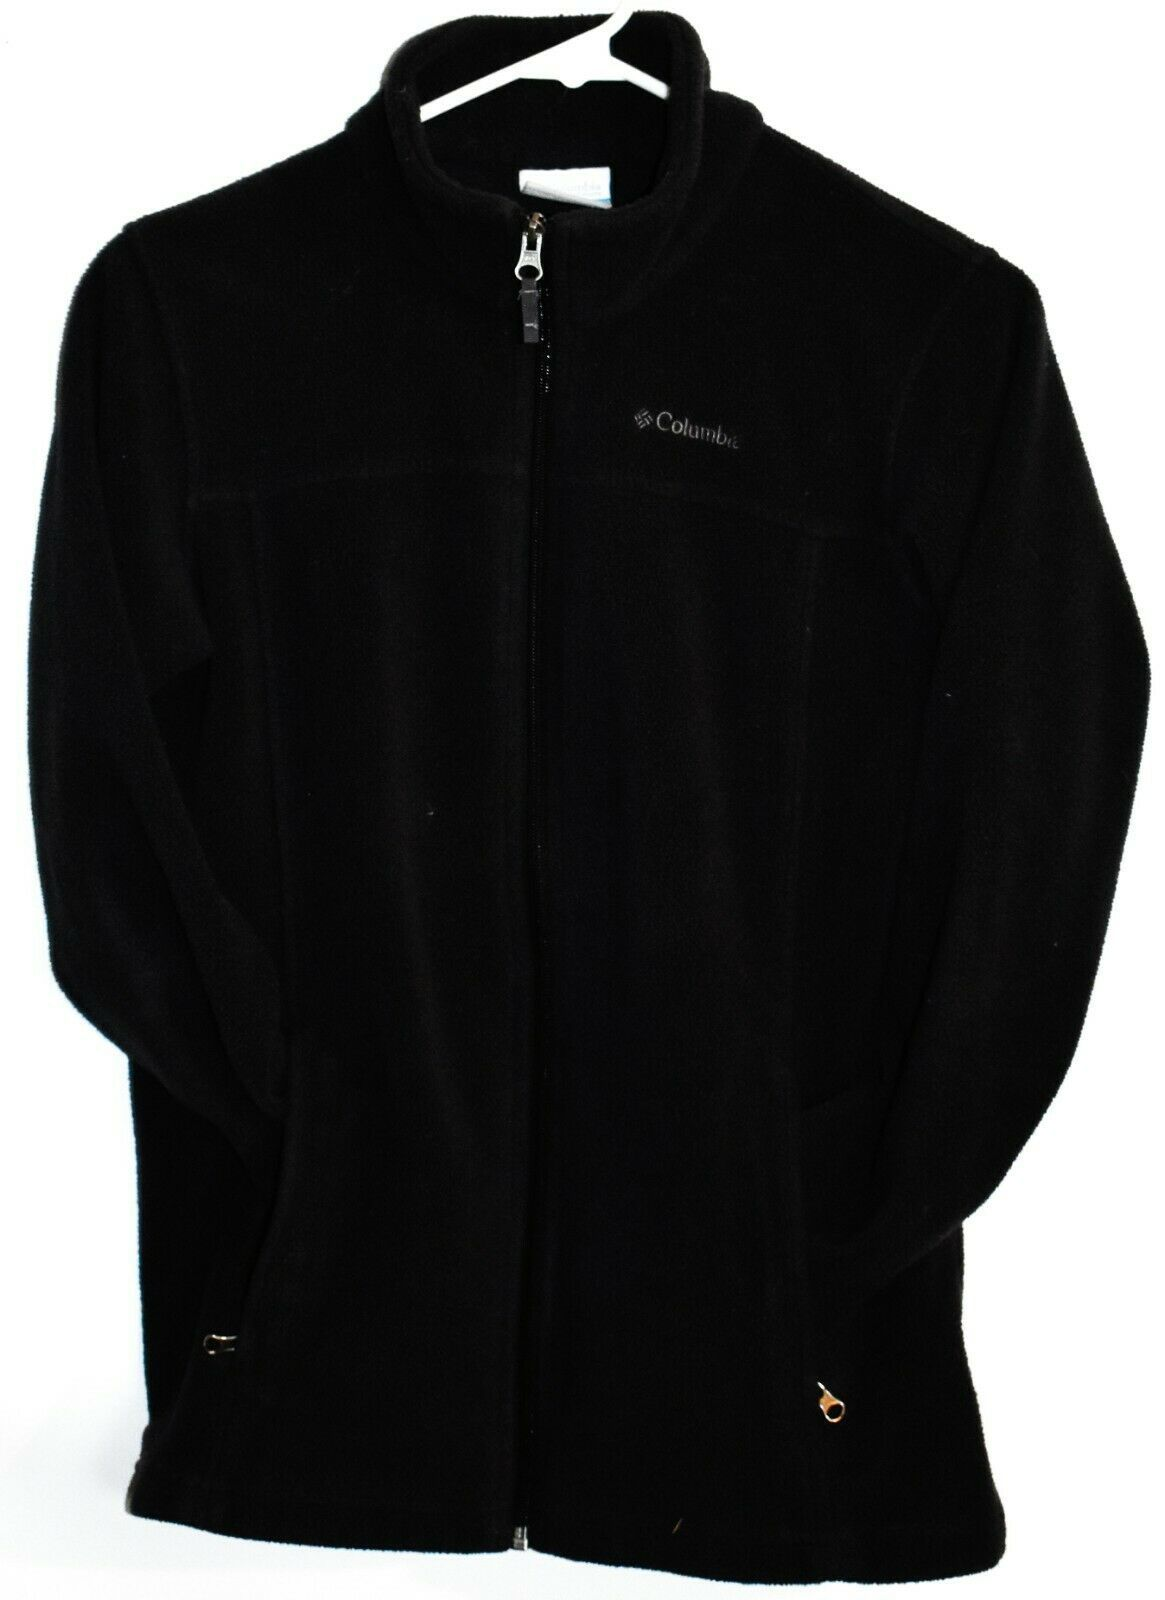 Columbia Sportwears Boys' Steens Mountain II Black Fleece Jacket Size L 14/16